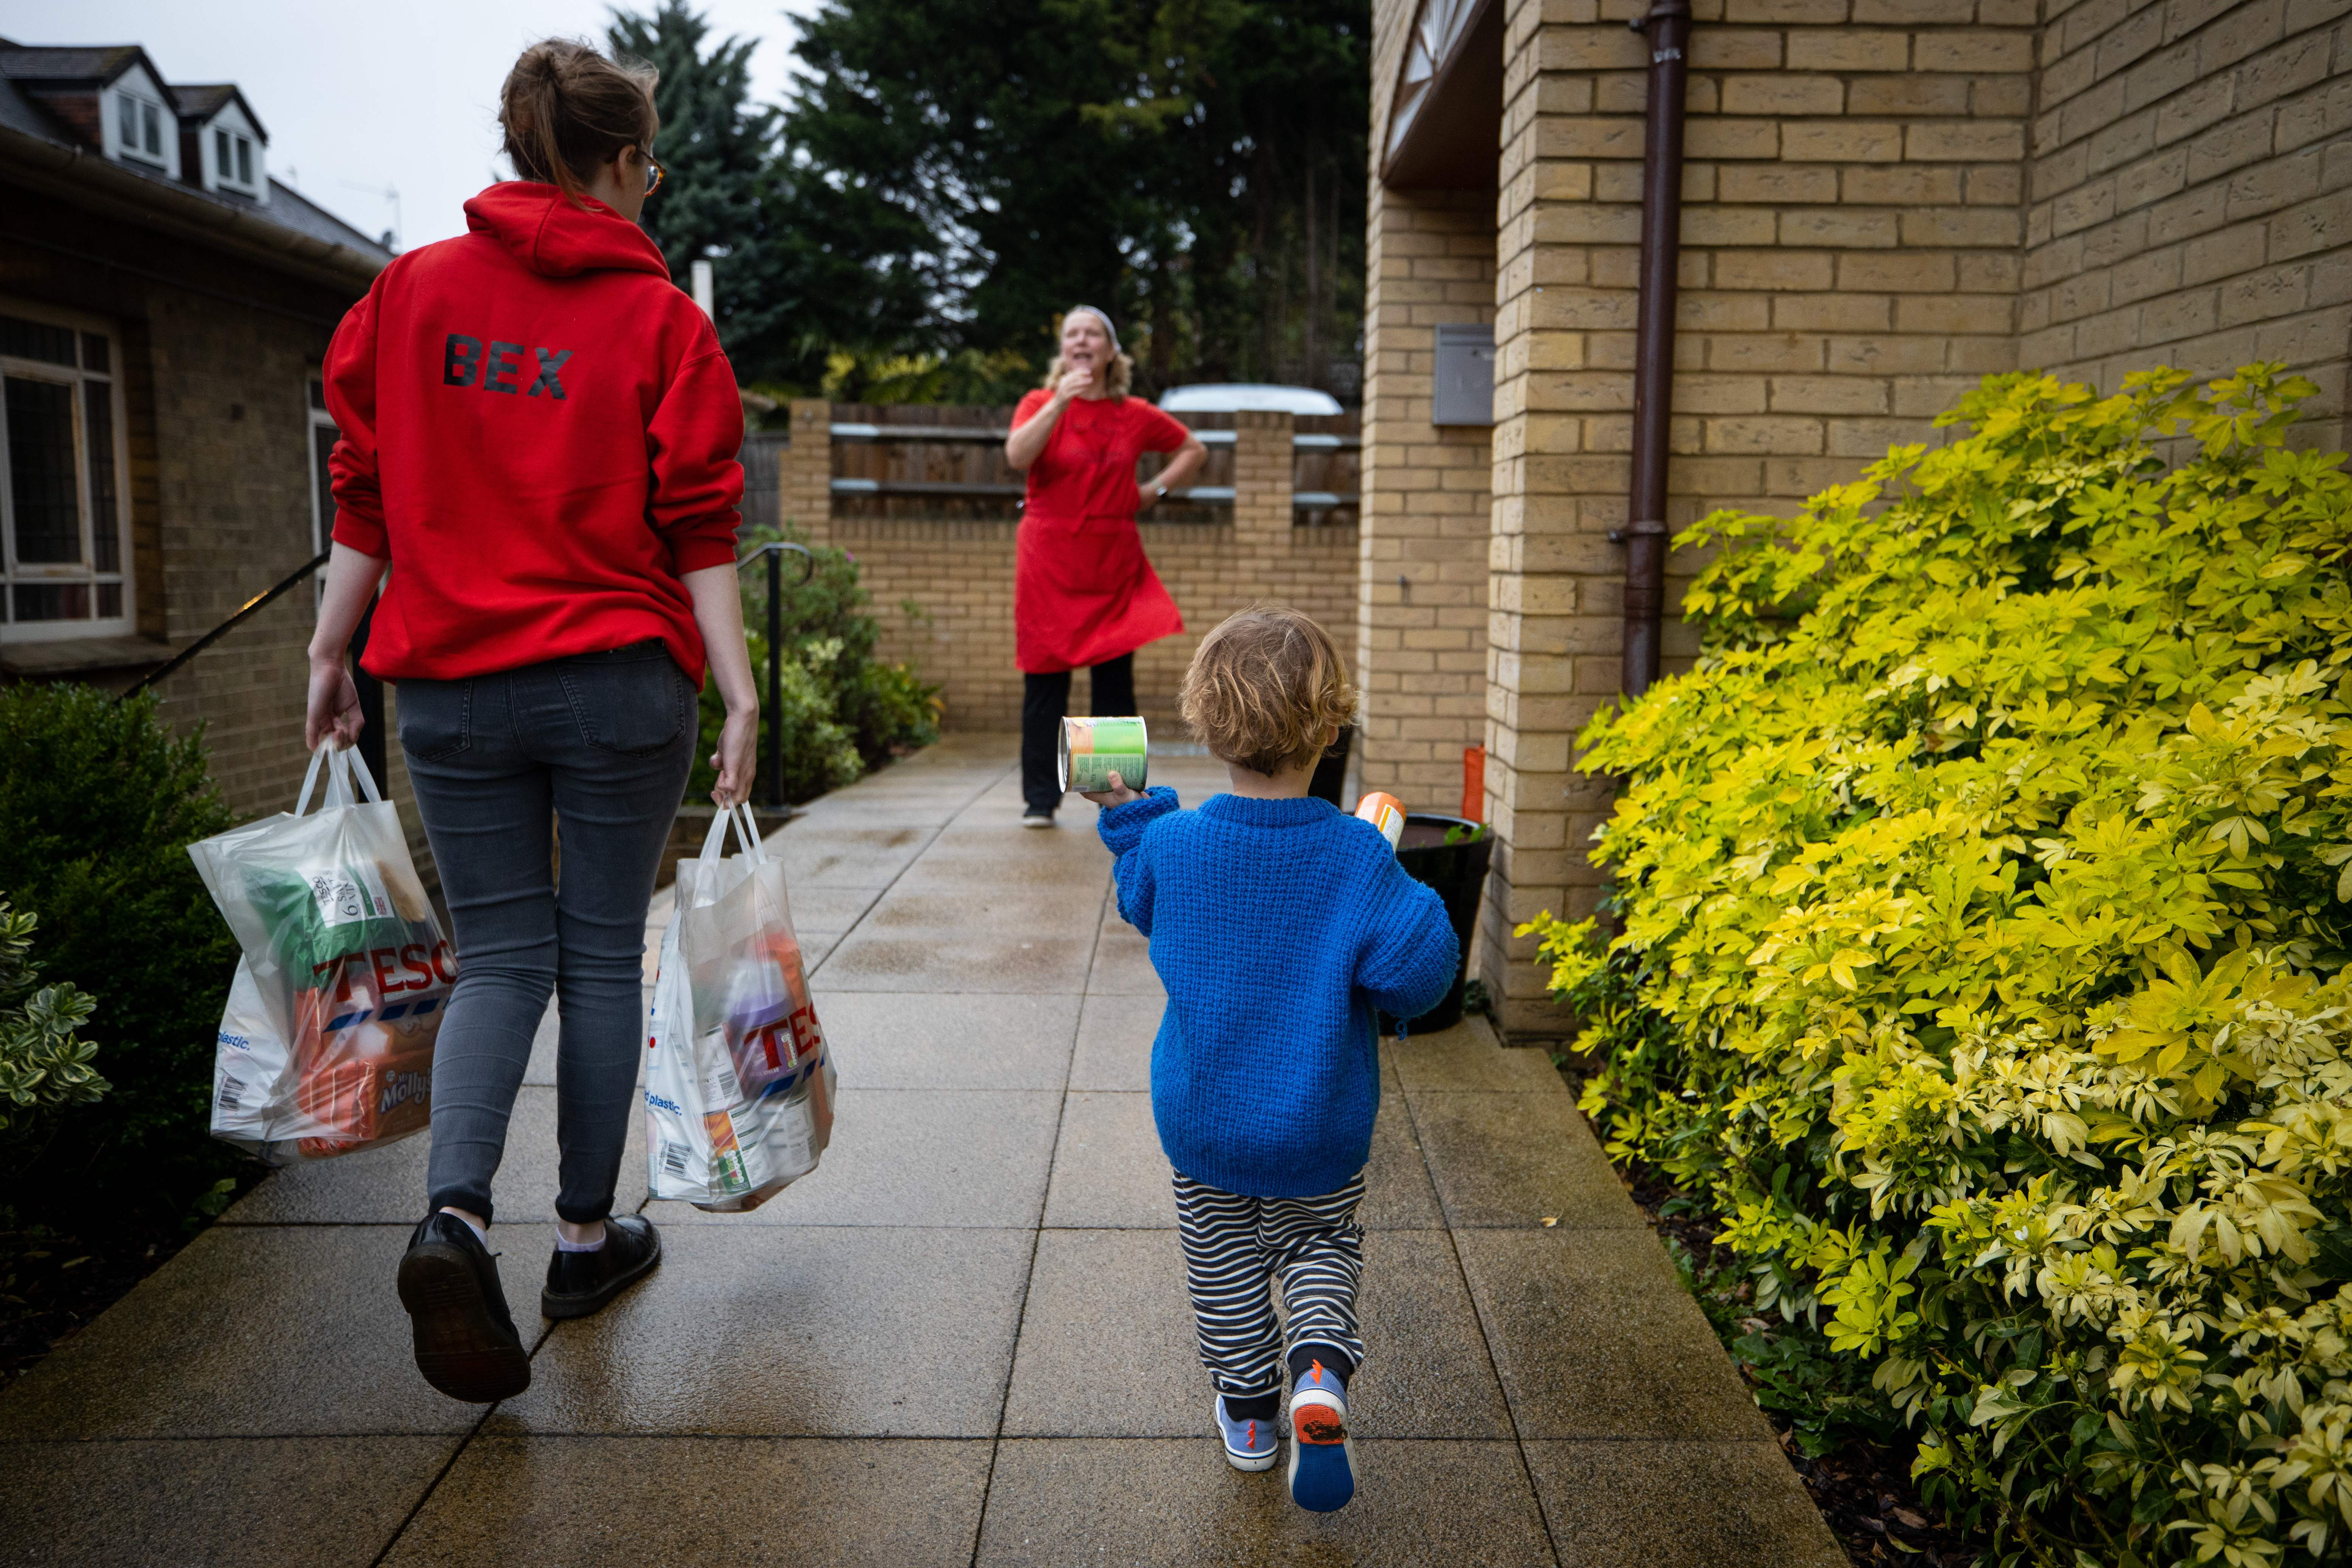 A food bank volunteer carries food parcels in a carrier bag up a driveway, alongside a child